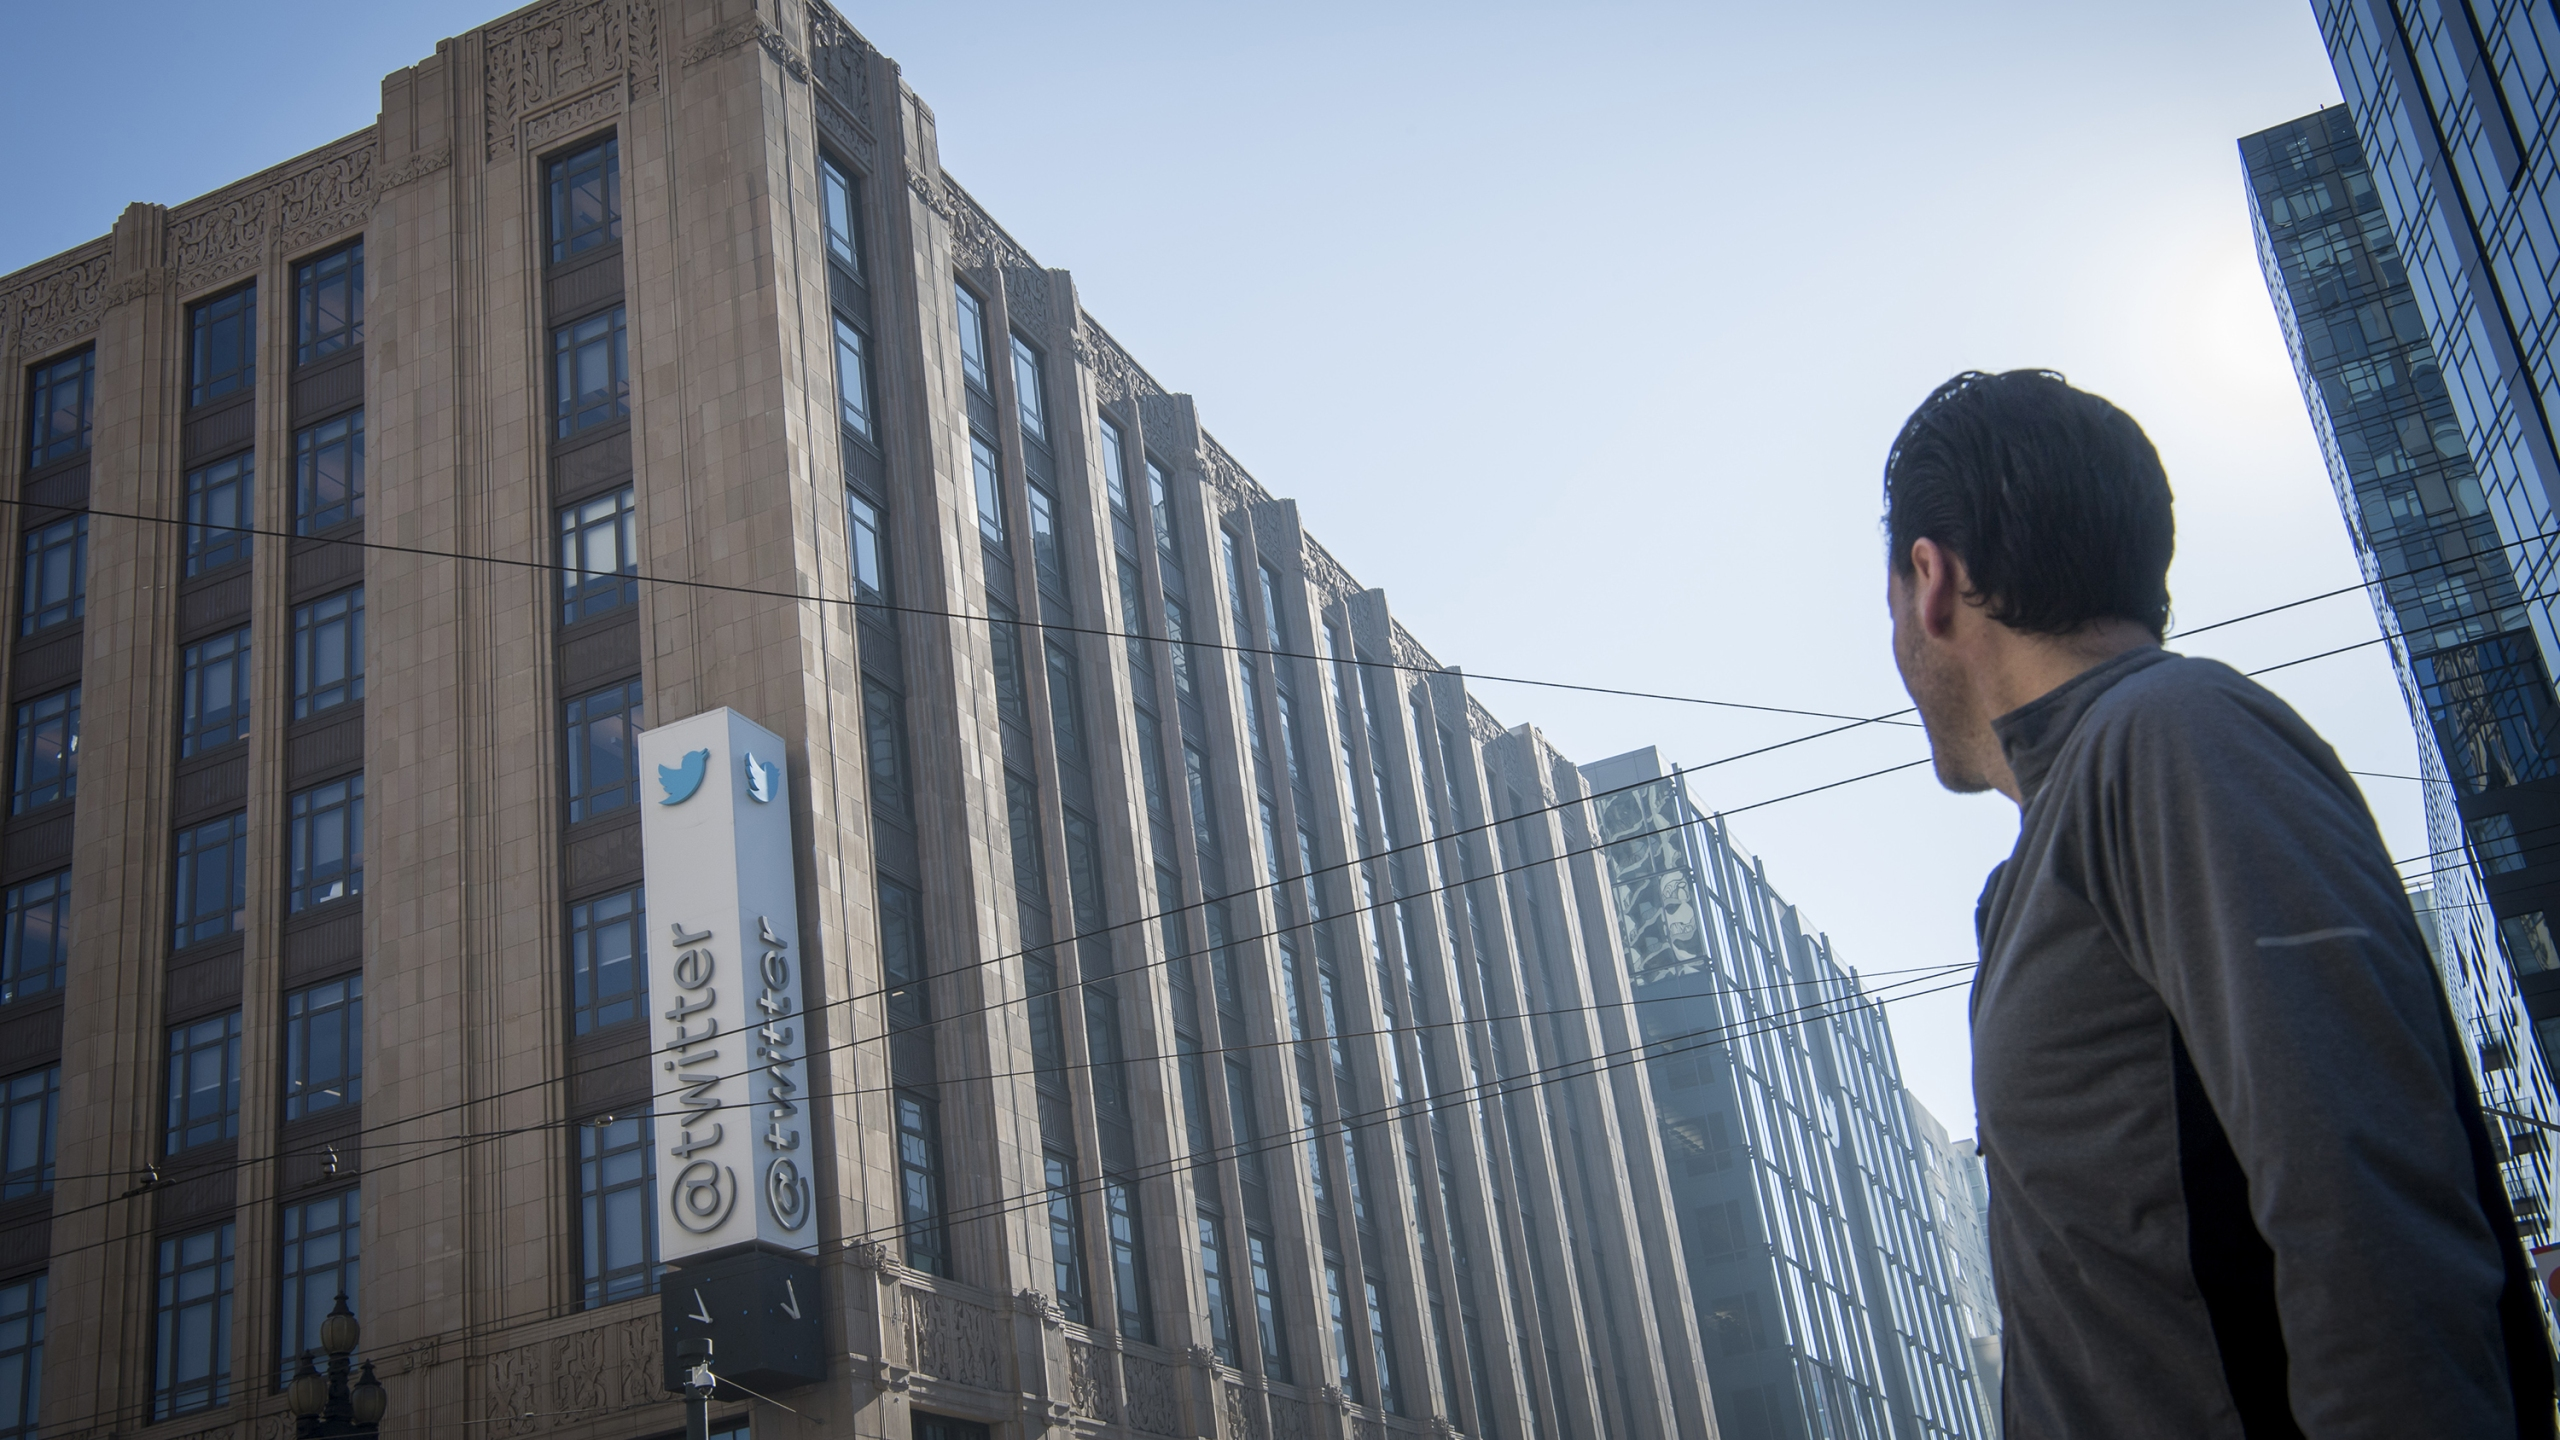 A pedestrian passes in front of Twitter Inc. headquarters in San Francisco, California, U.S., on Thursday, Feb. 8, 2018. (David Paul Morris/Bloomberg via Getty Images)